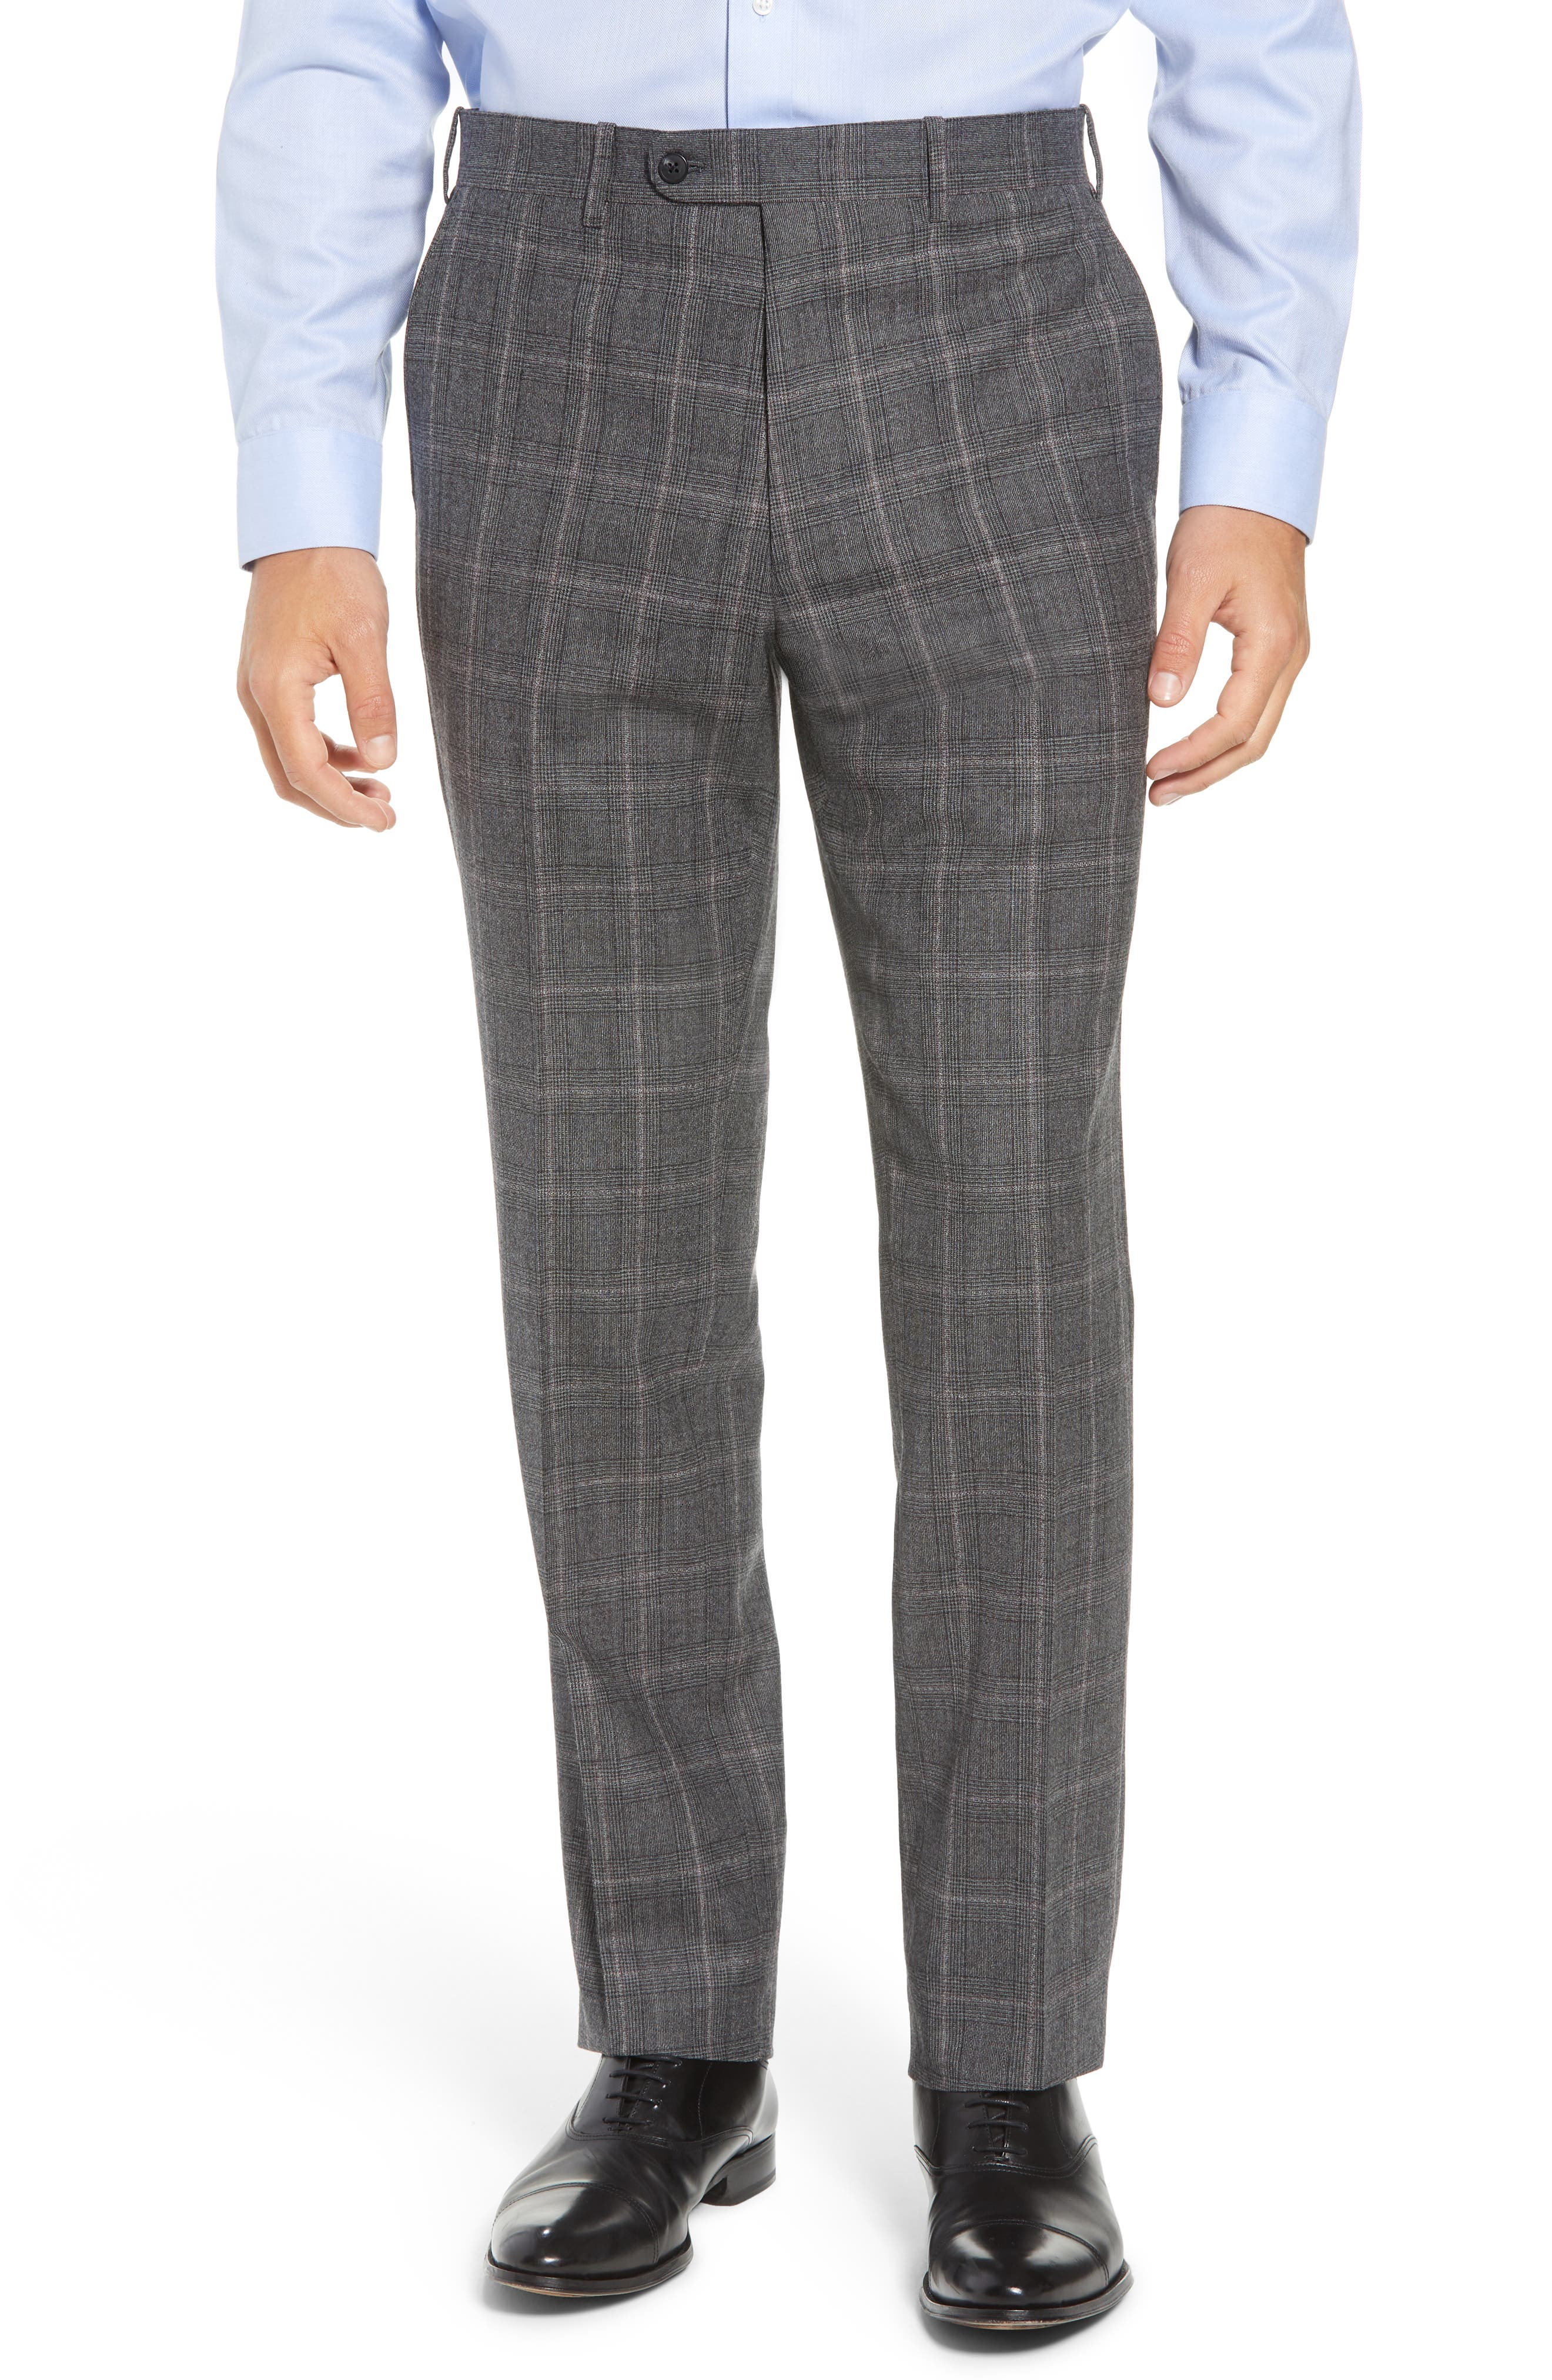 Torino Traditional Fit Flat Front Plaid Wool & Cashmere Trousers,                         Main,                         color, GREY